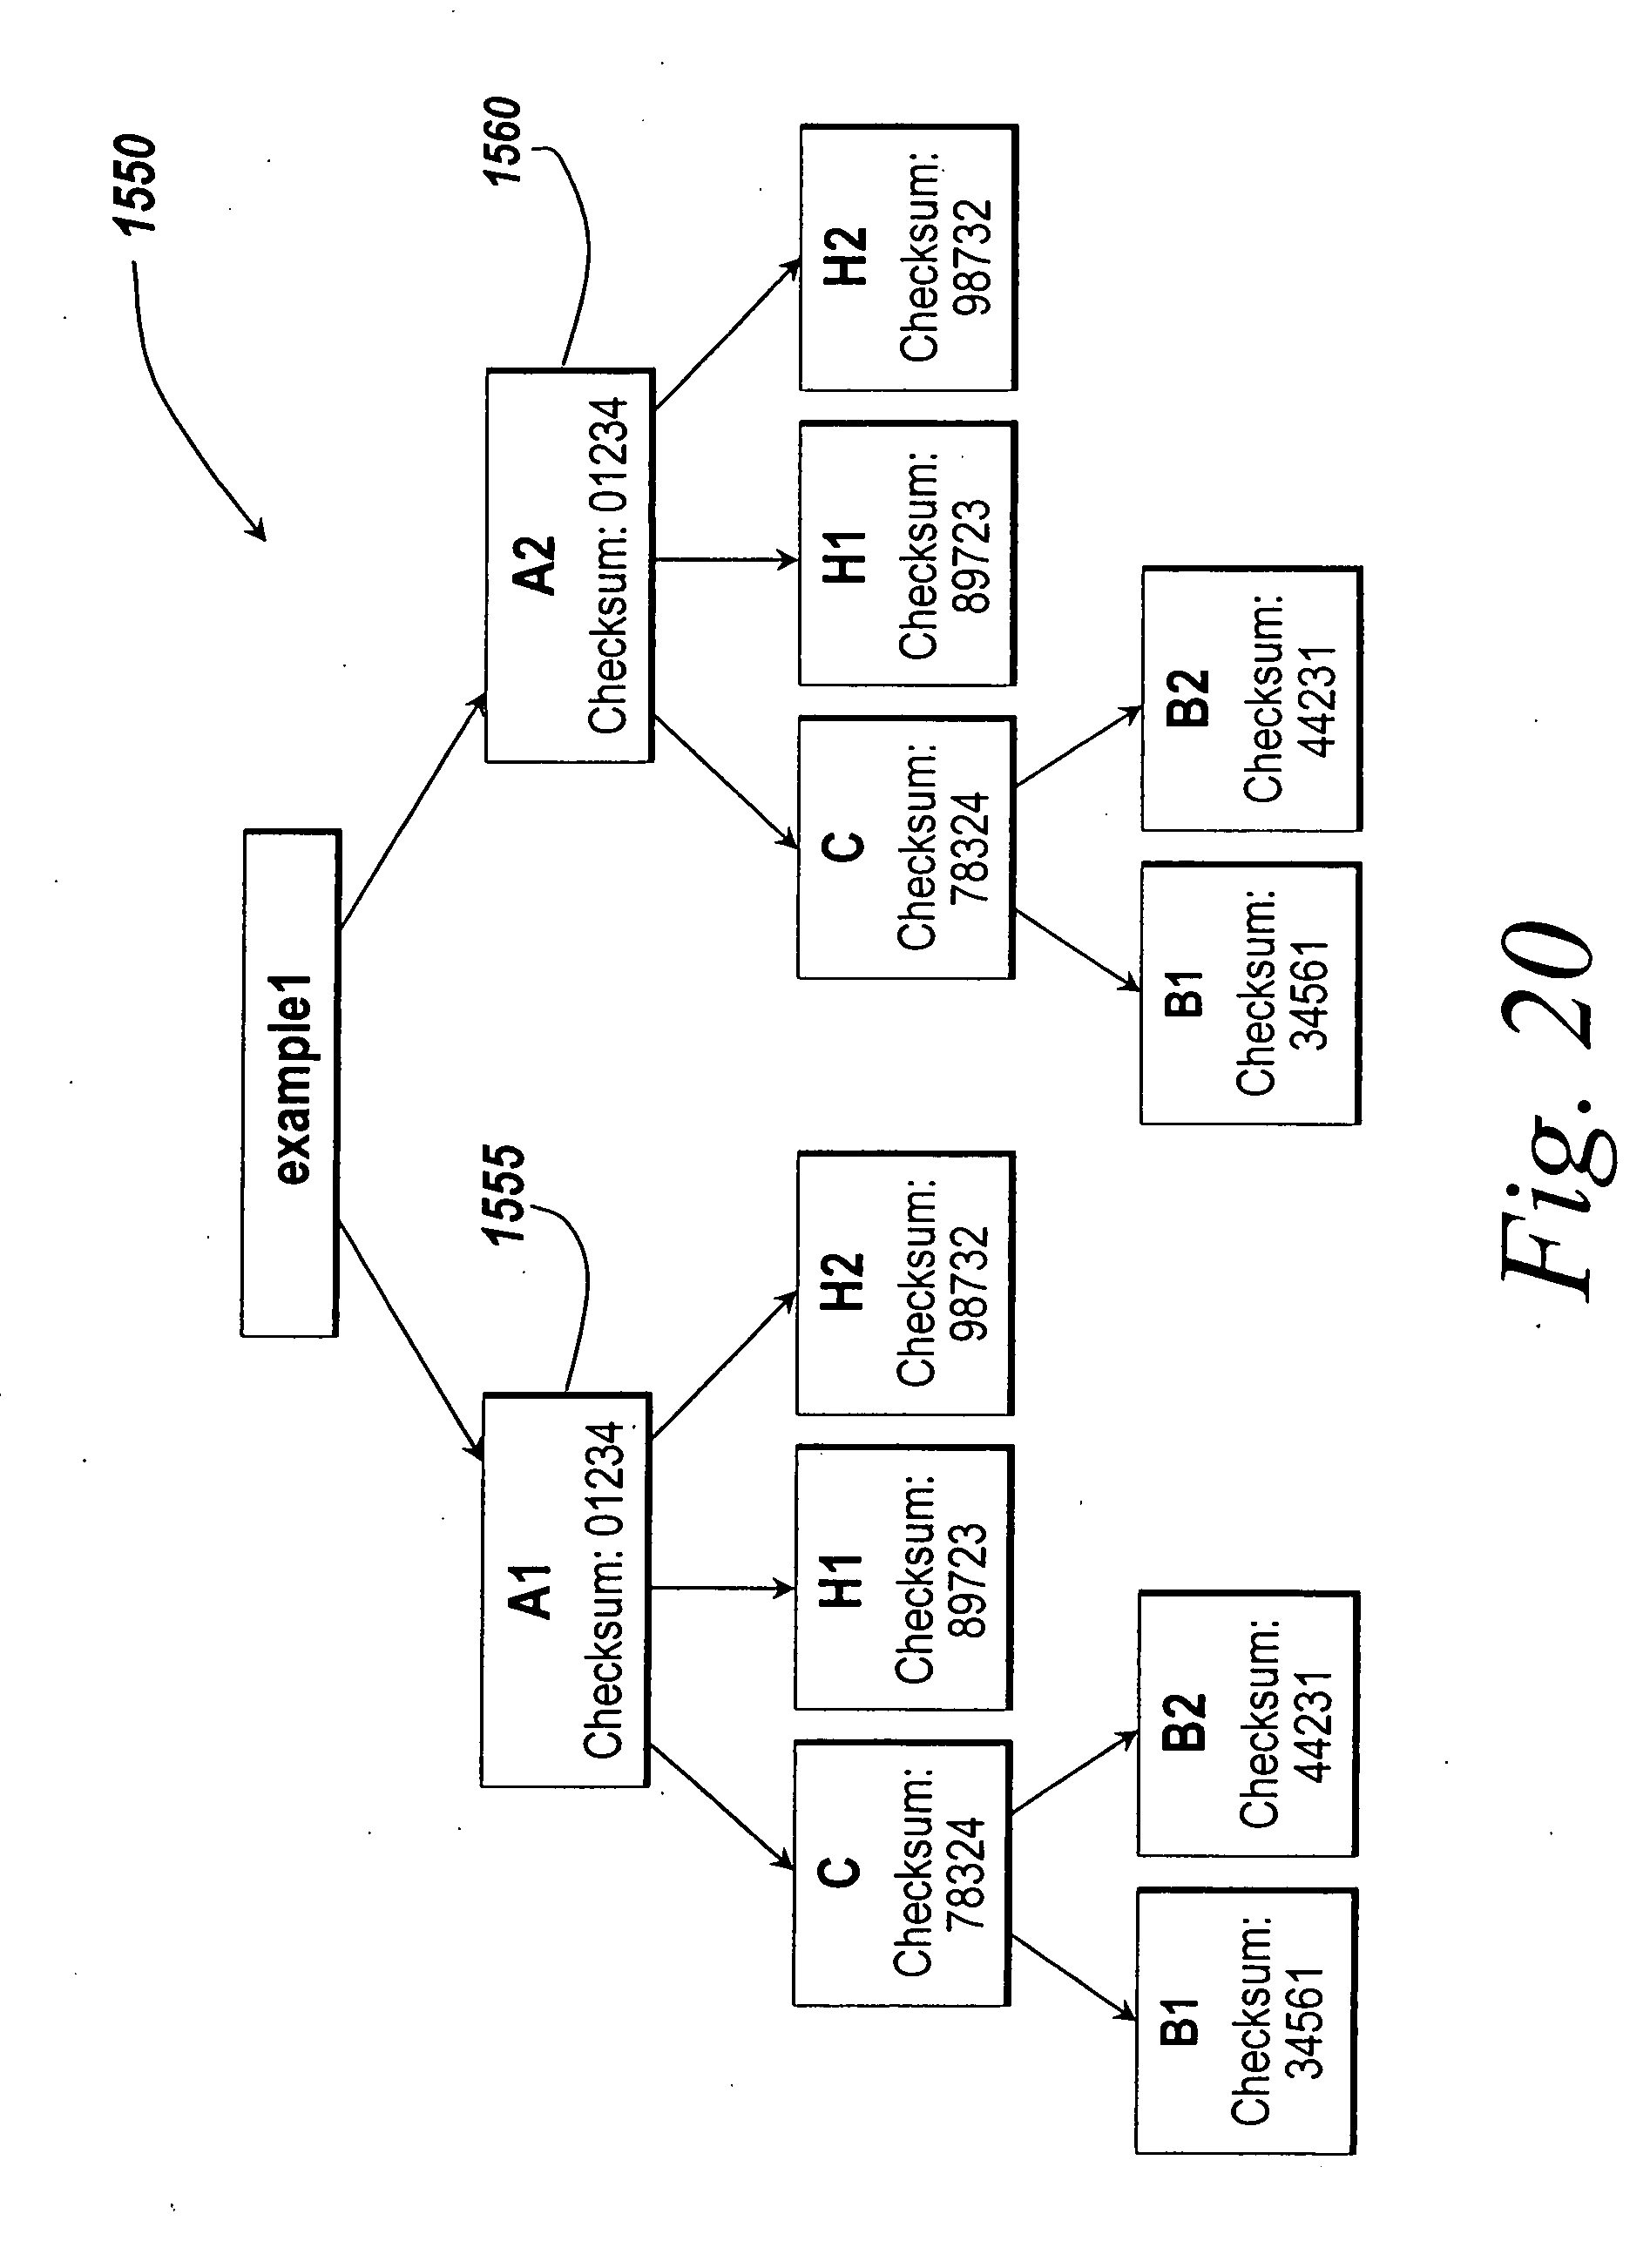 patent us20070157138 - management of functions for block diagrams